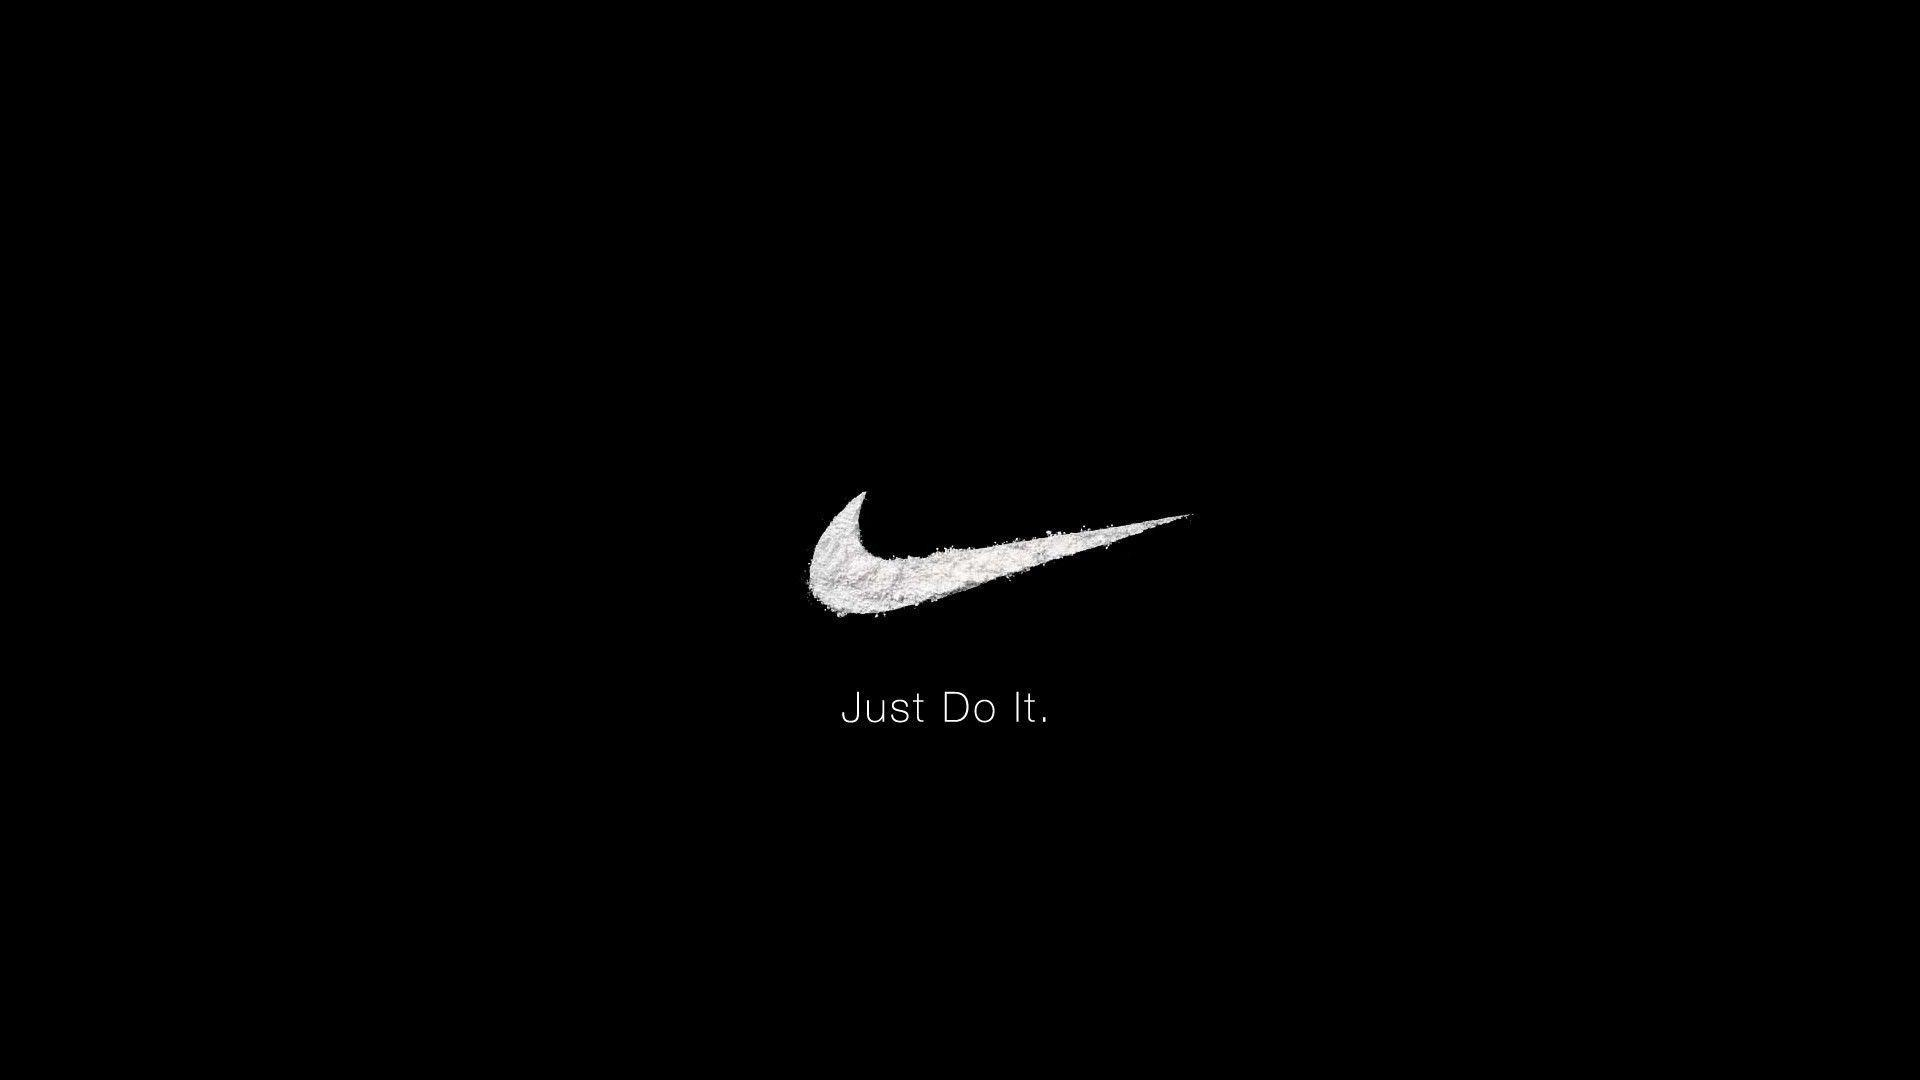 Nike Wallpaper Backgrounds Wallpaper Cave Customize your desktop, mobile phone and tablet with our wide variety of cool and interesting 1920x1080 wallpapers in just a few clicks! nike wallpaper backgrounds wallpaper cave